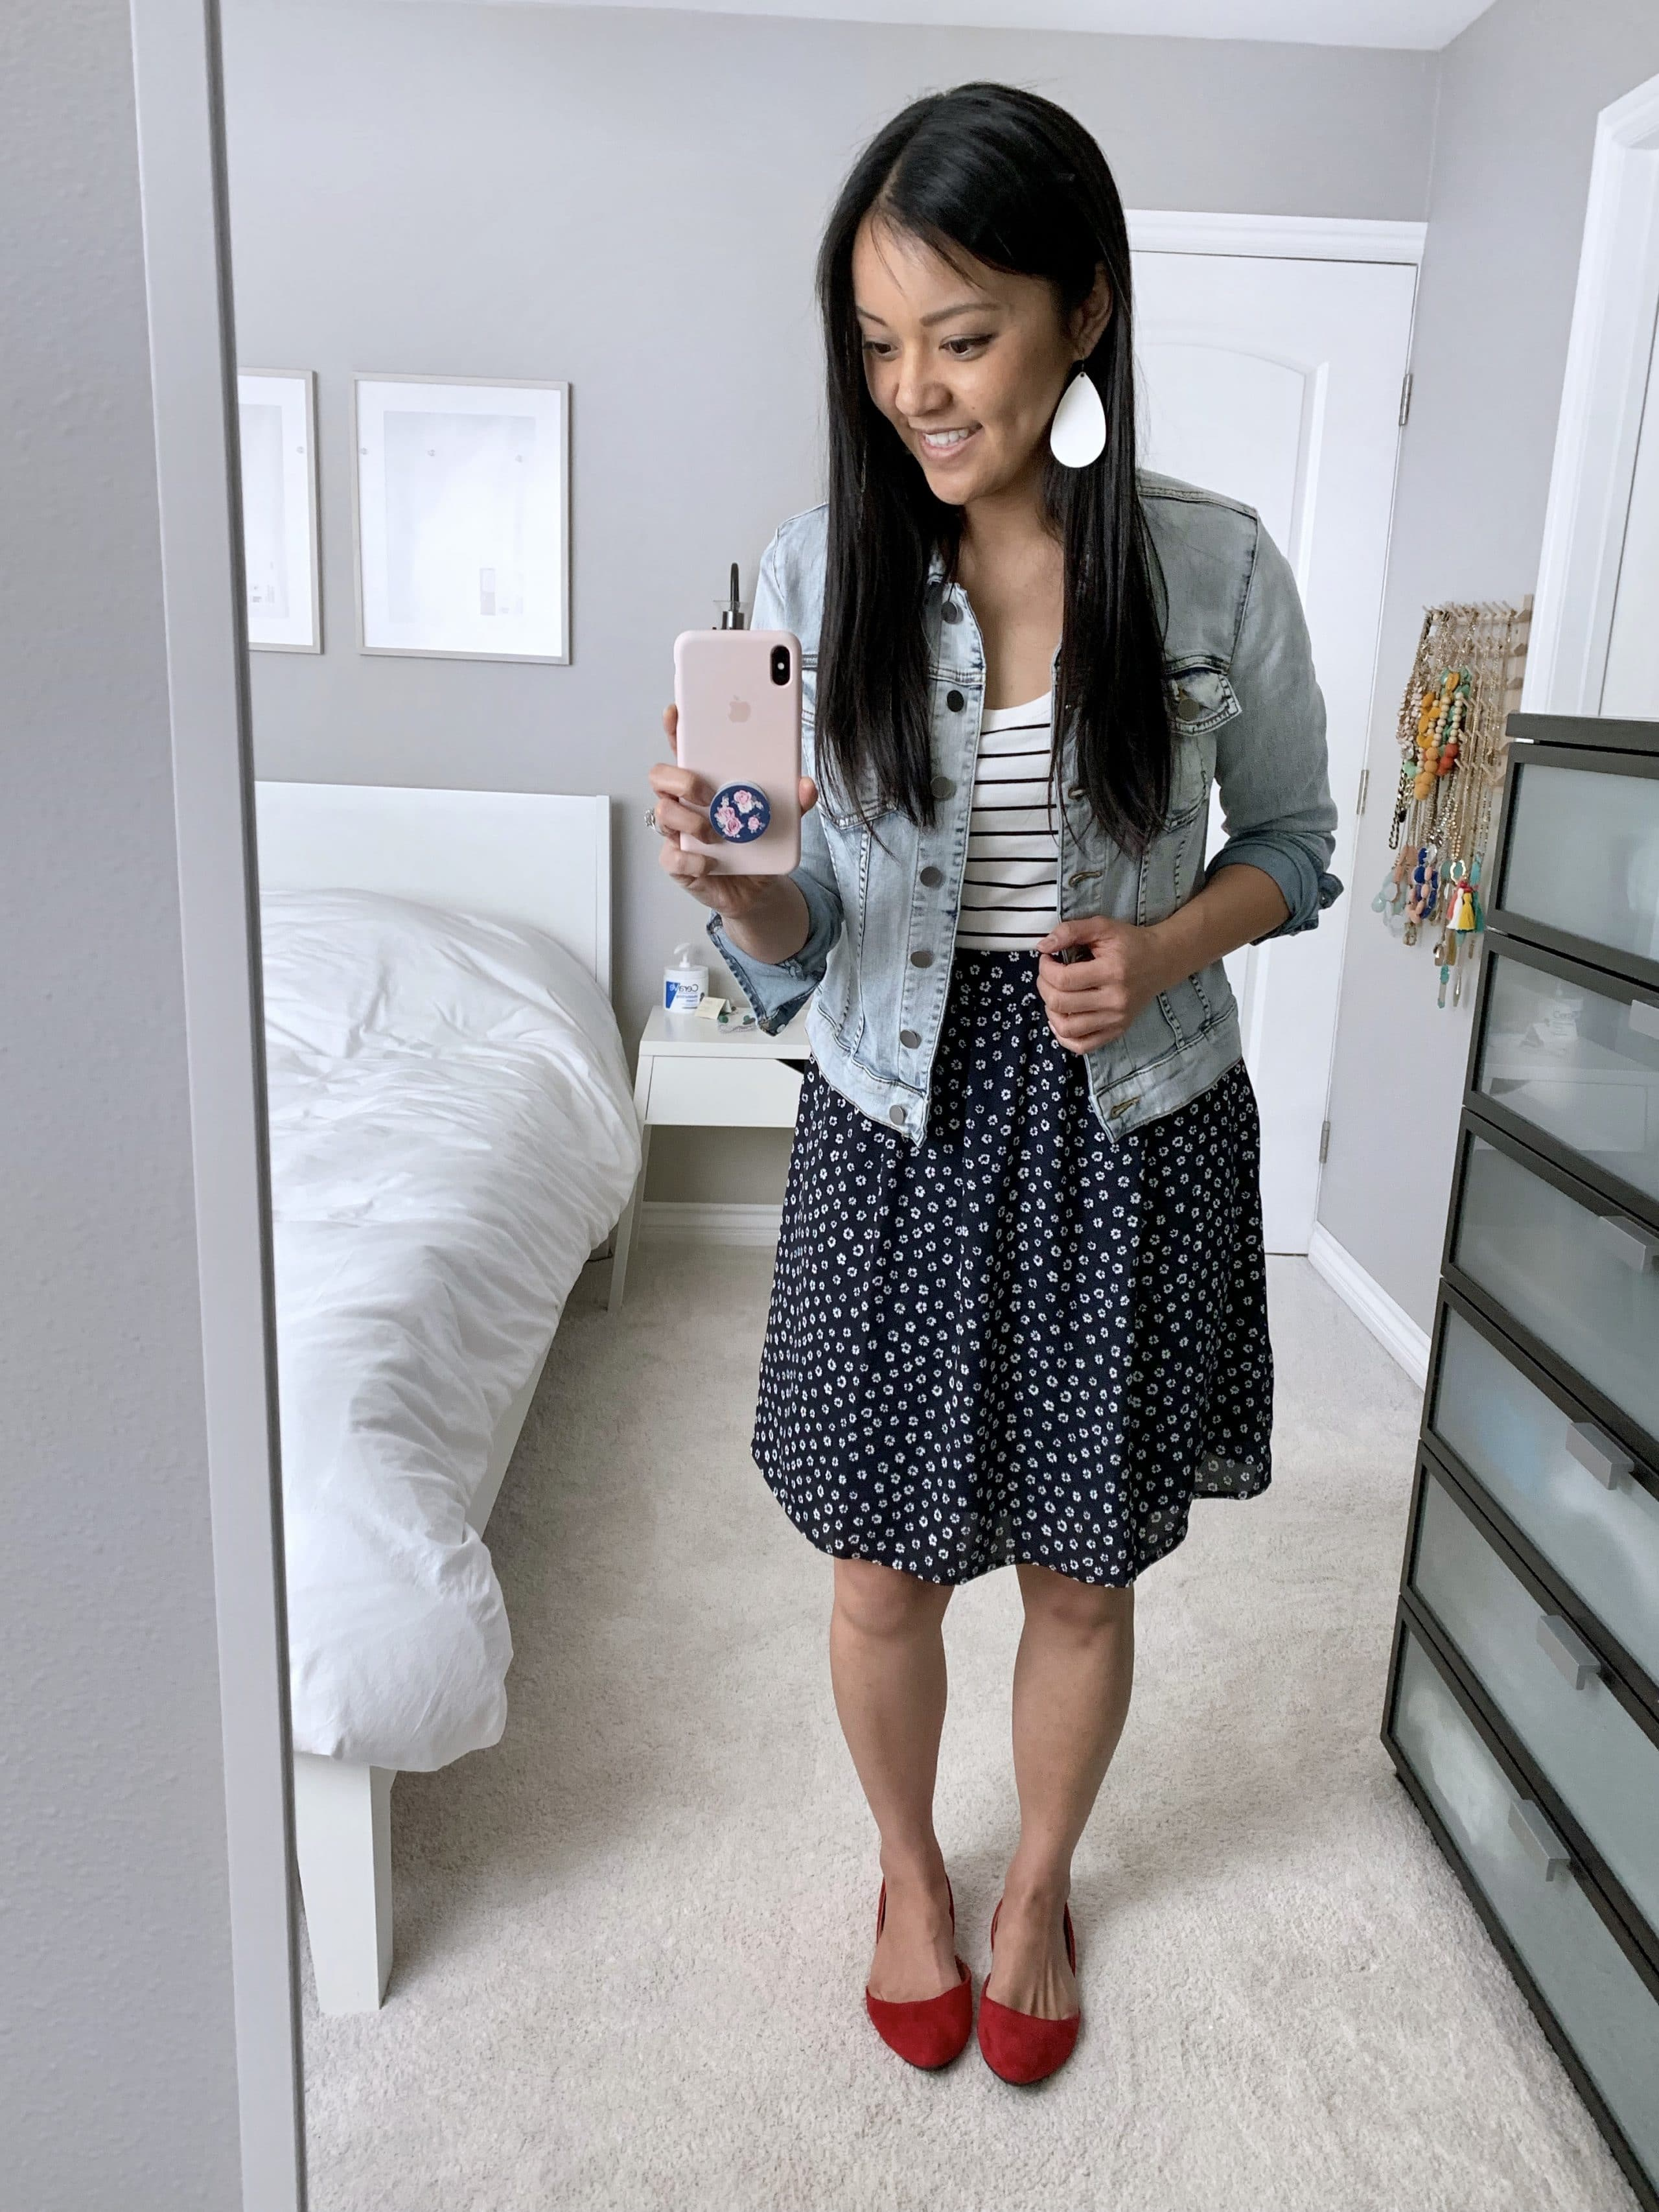 navy printed skirt + striped tee + denim jacket + red flats outfit